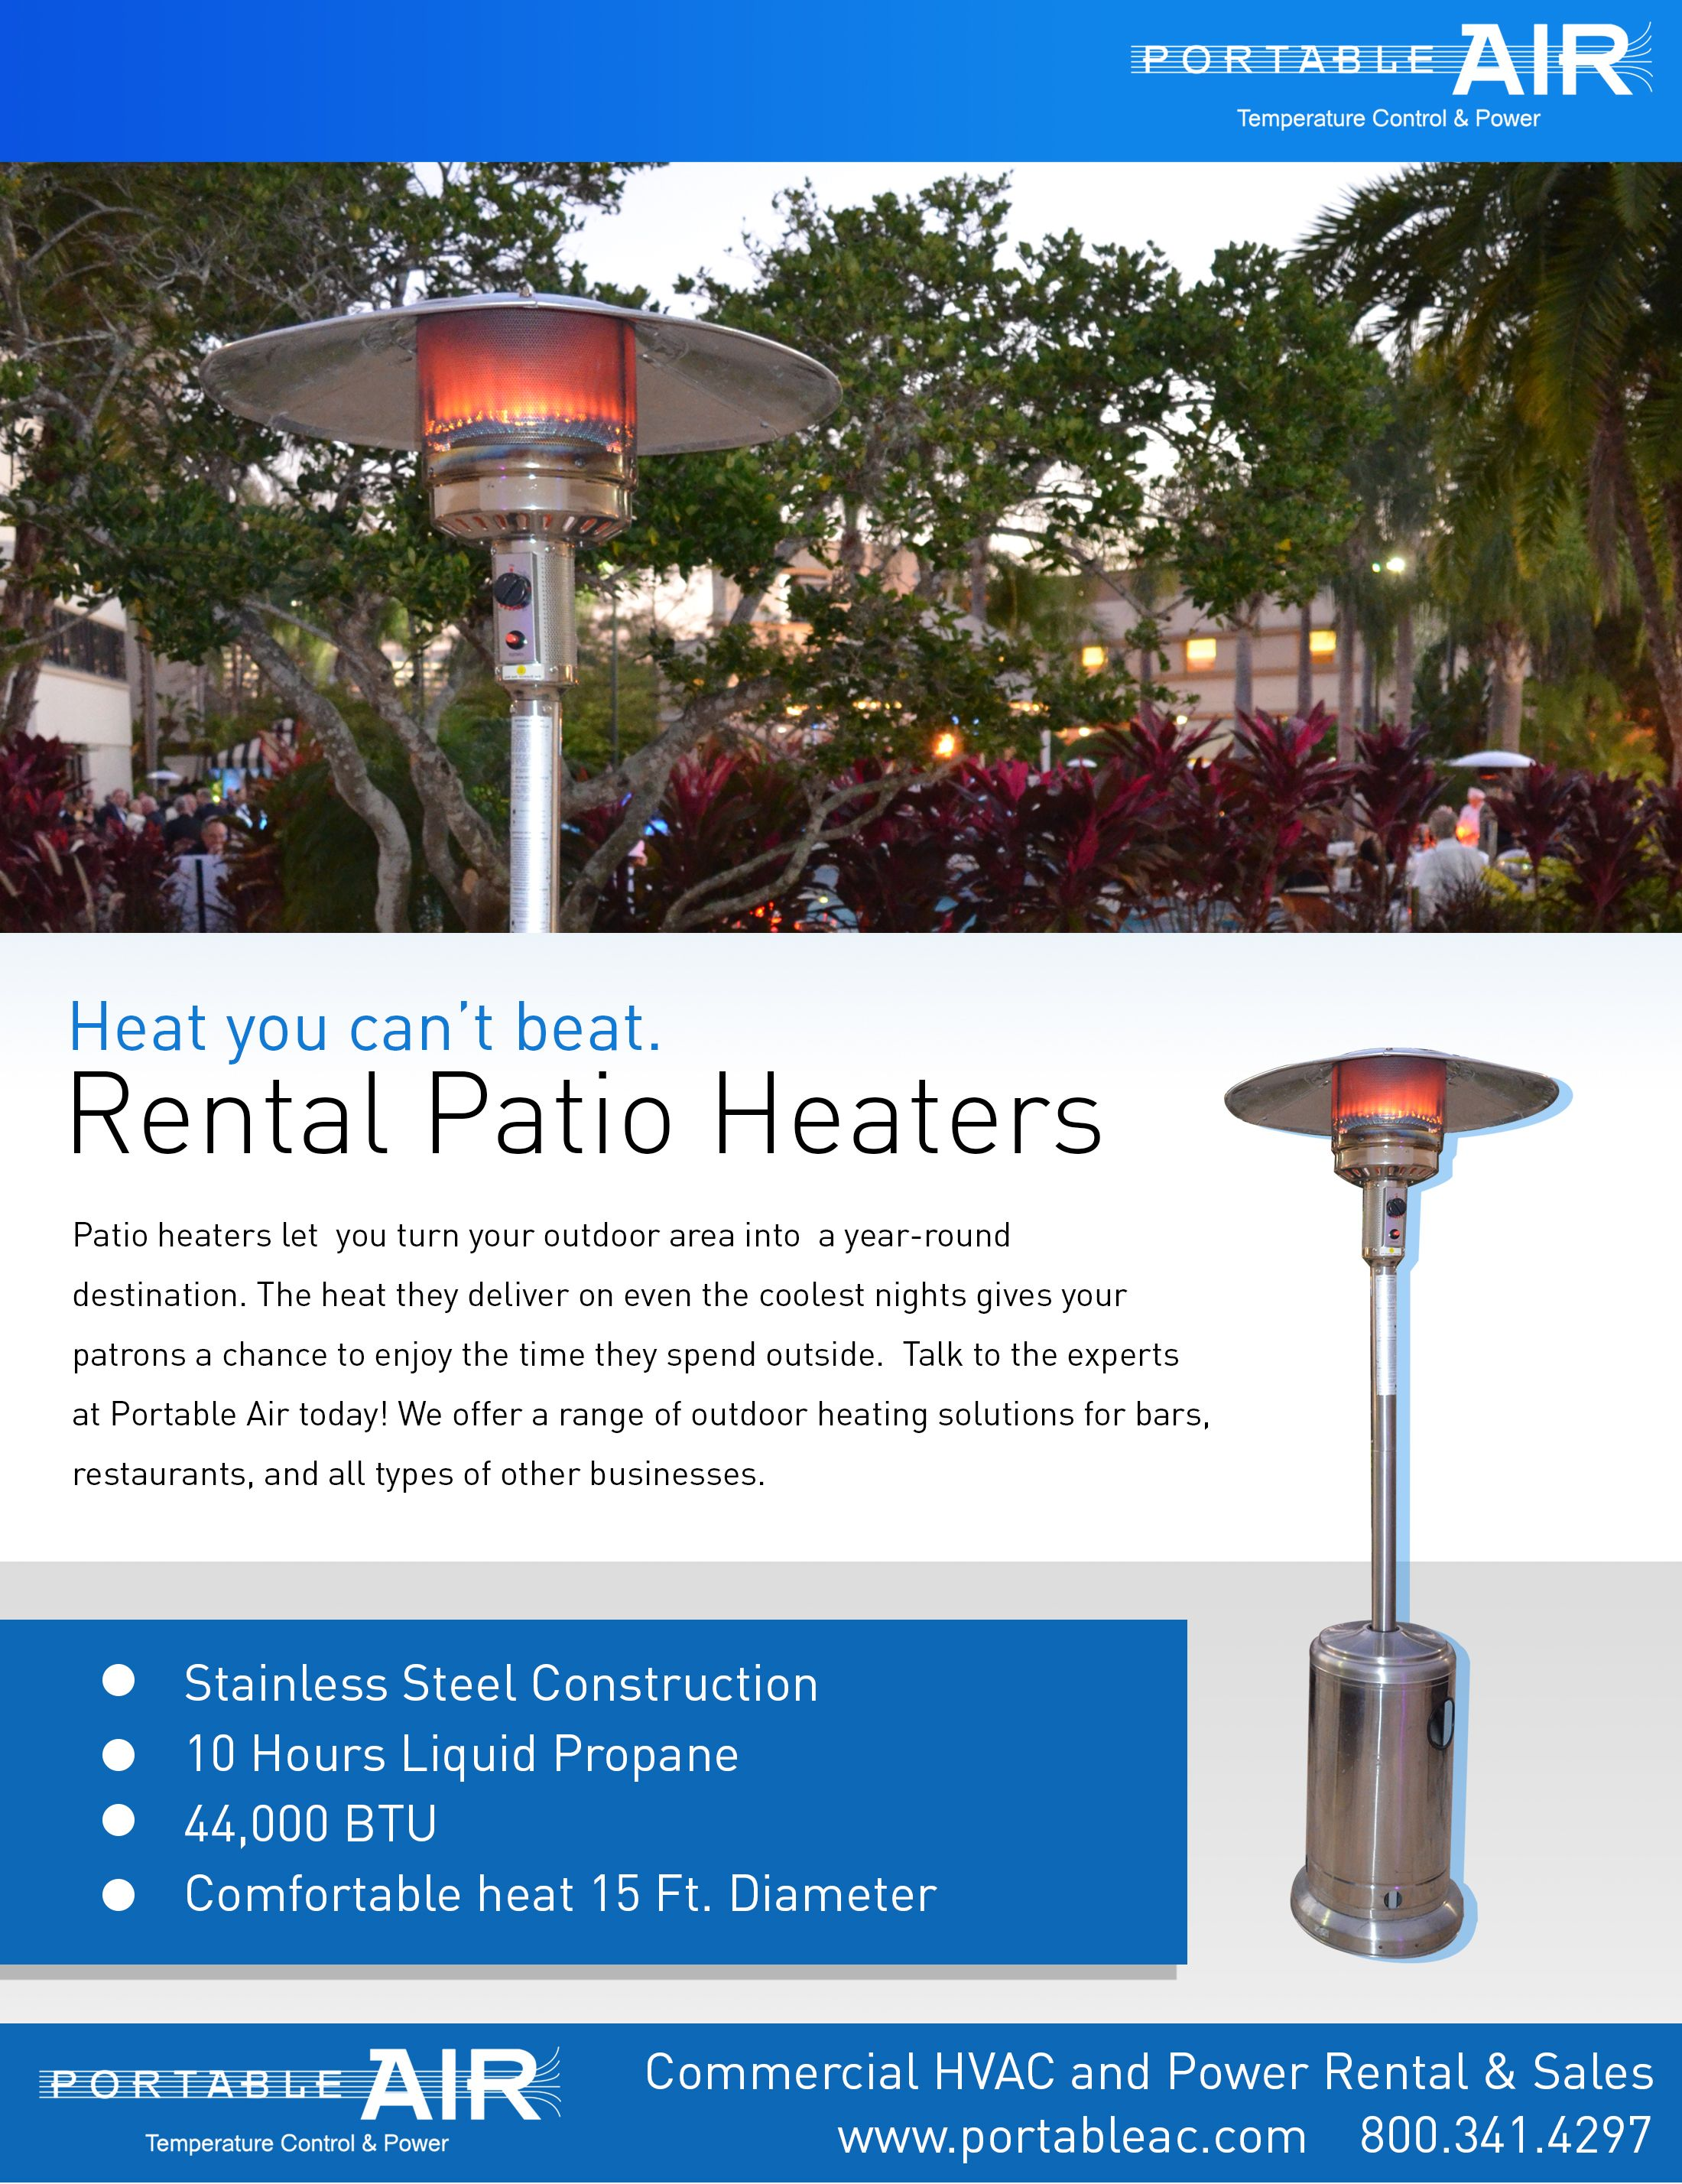 Patio Heater rentals make for a perfect outdoor event at any